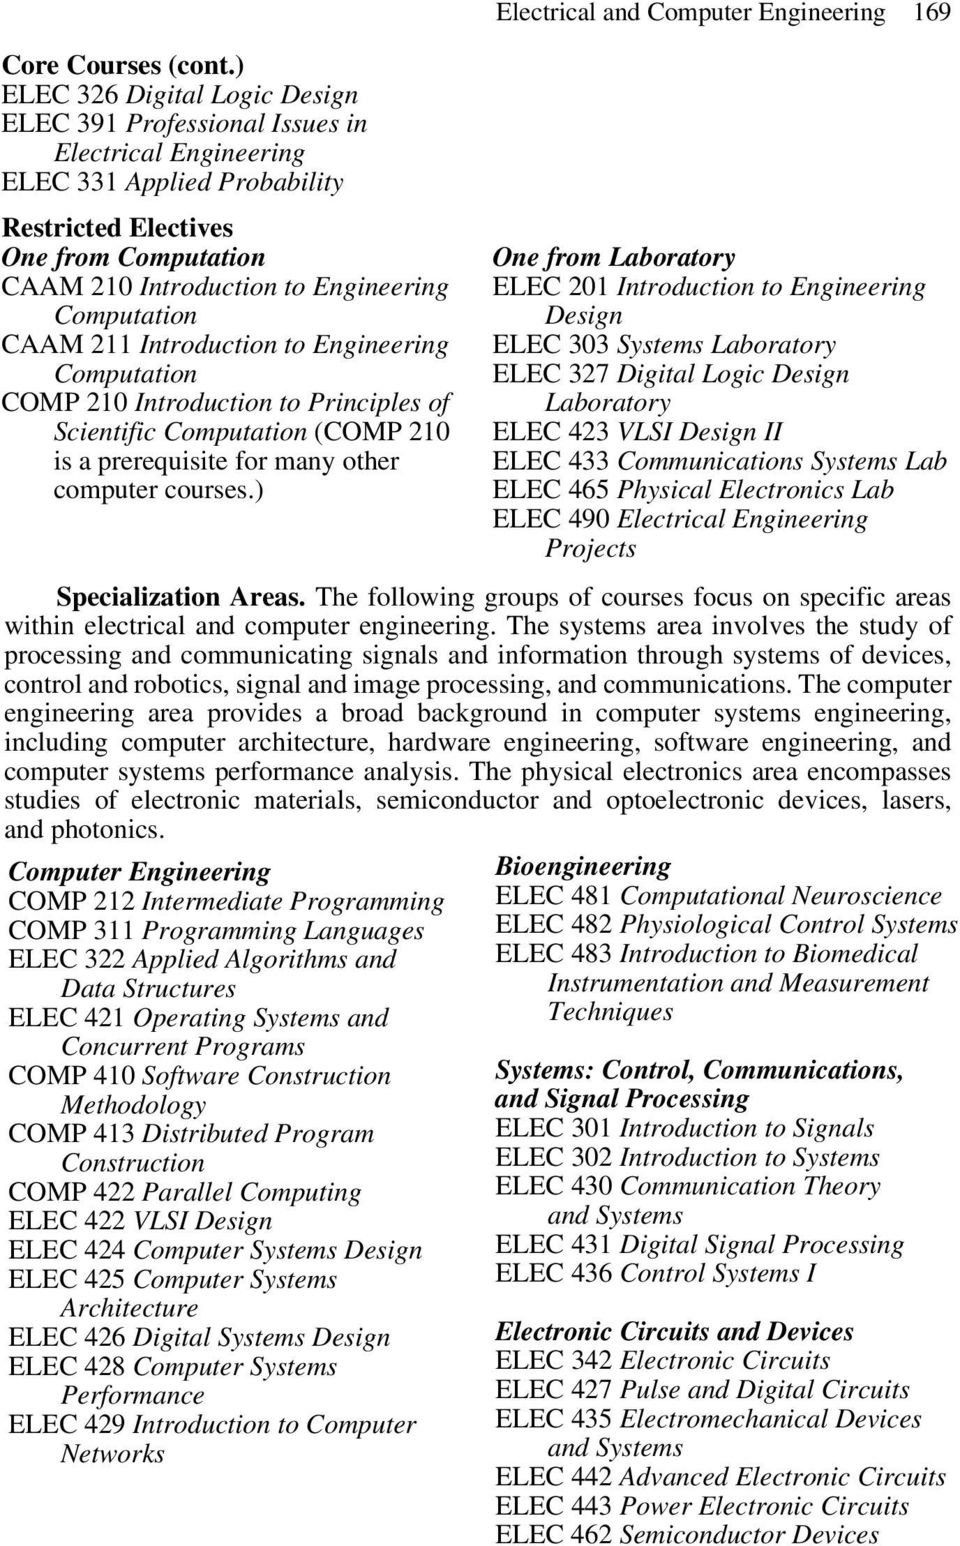 Computation CAAM 211 Introduction to Engineering Computation COMP 210 Introduction to Principles of Scientific Computation (COMP 210 is a prerequisite for many other computer courses.